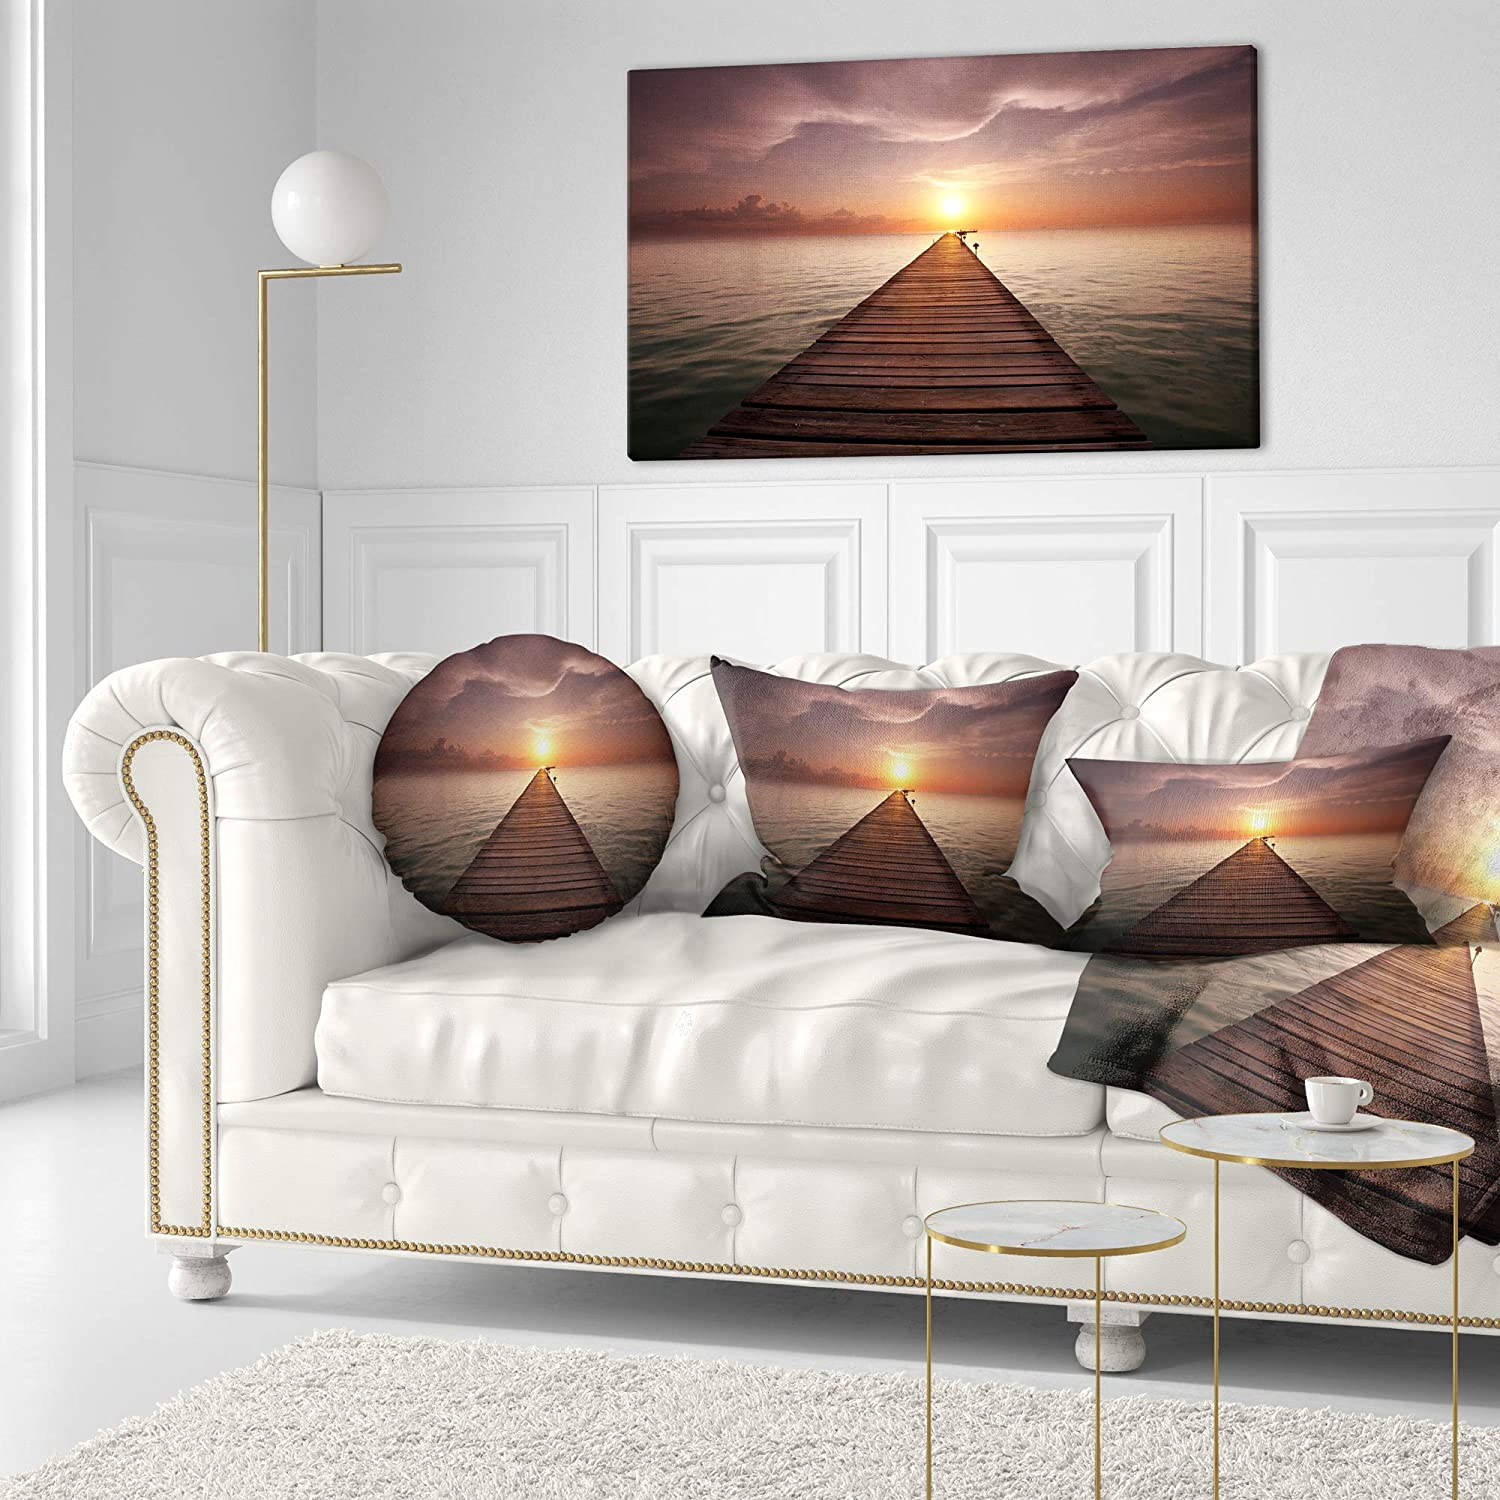 Insert Printed On Both Side Designart CU12405-20-20-C Boardwalk into The Sun Seashore Round Cushion Cover for Living Room Sofa Throw Pillow 20